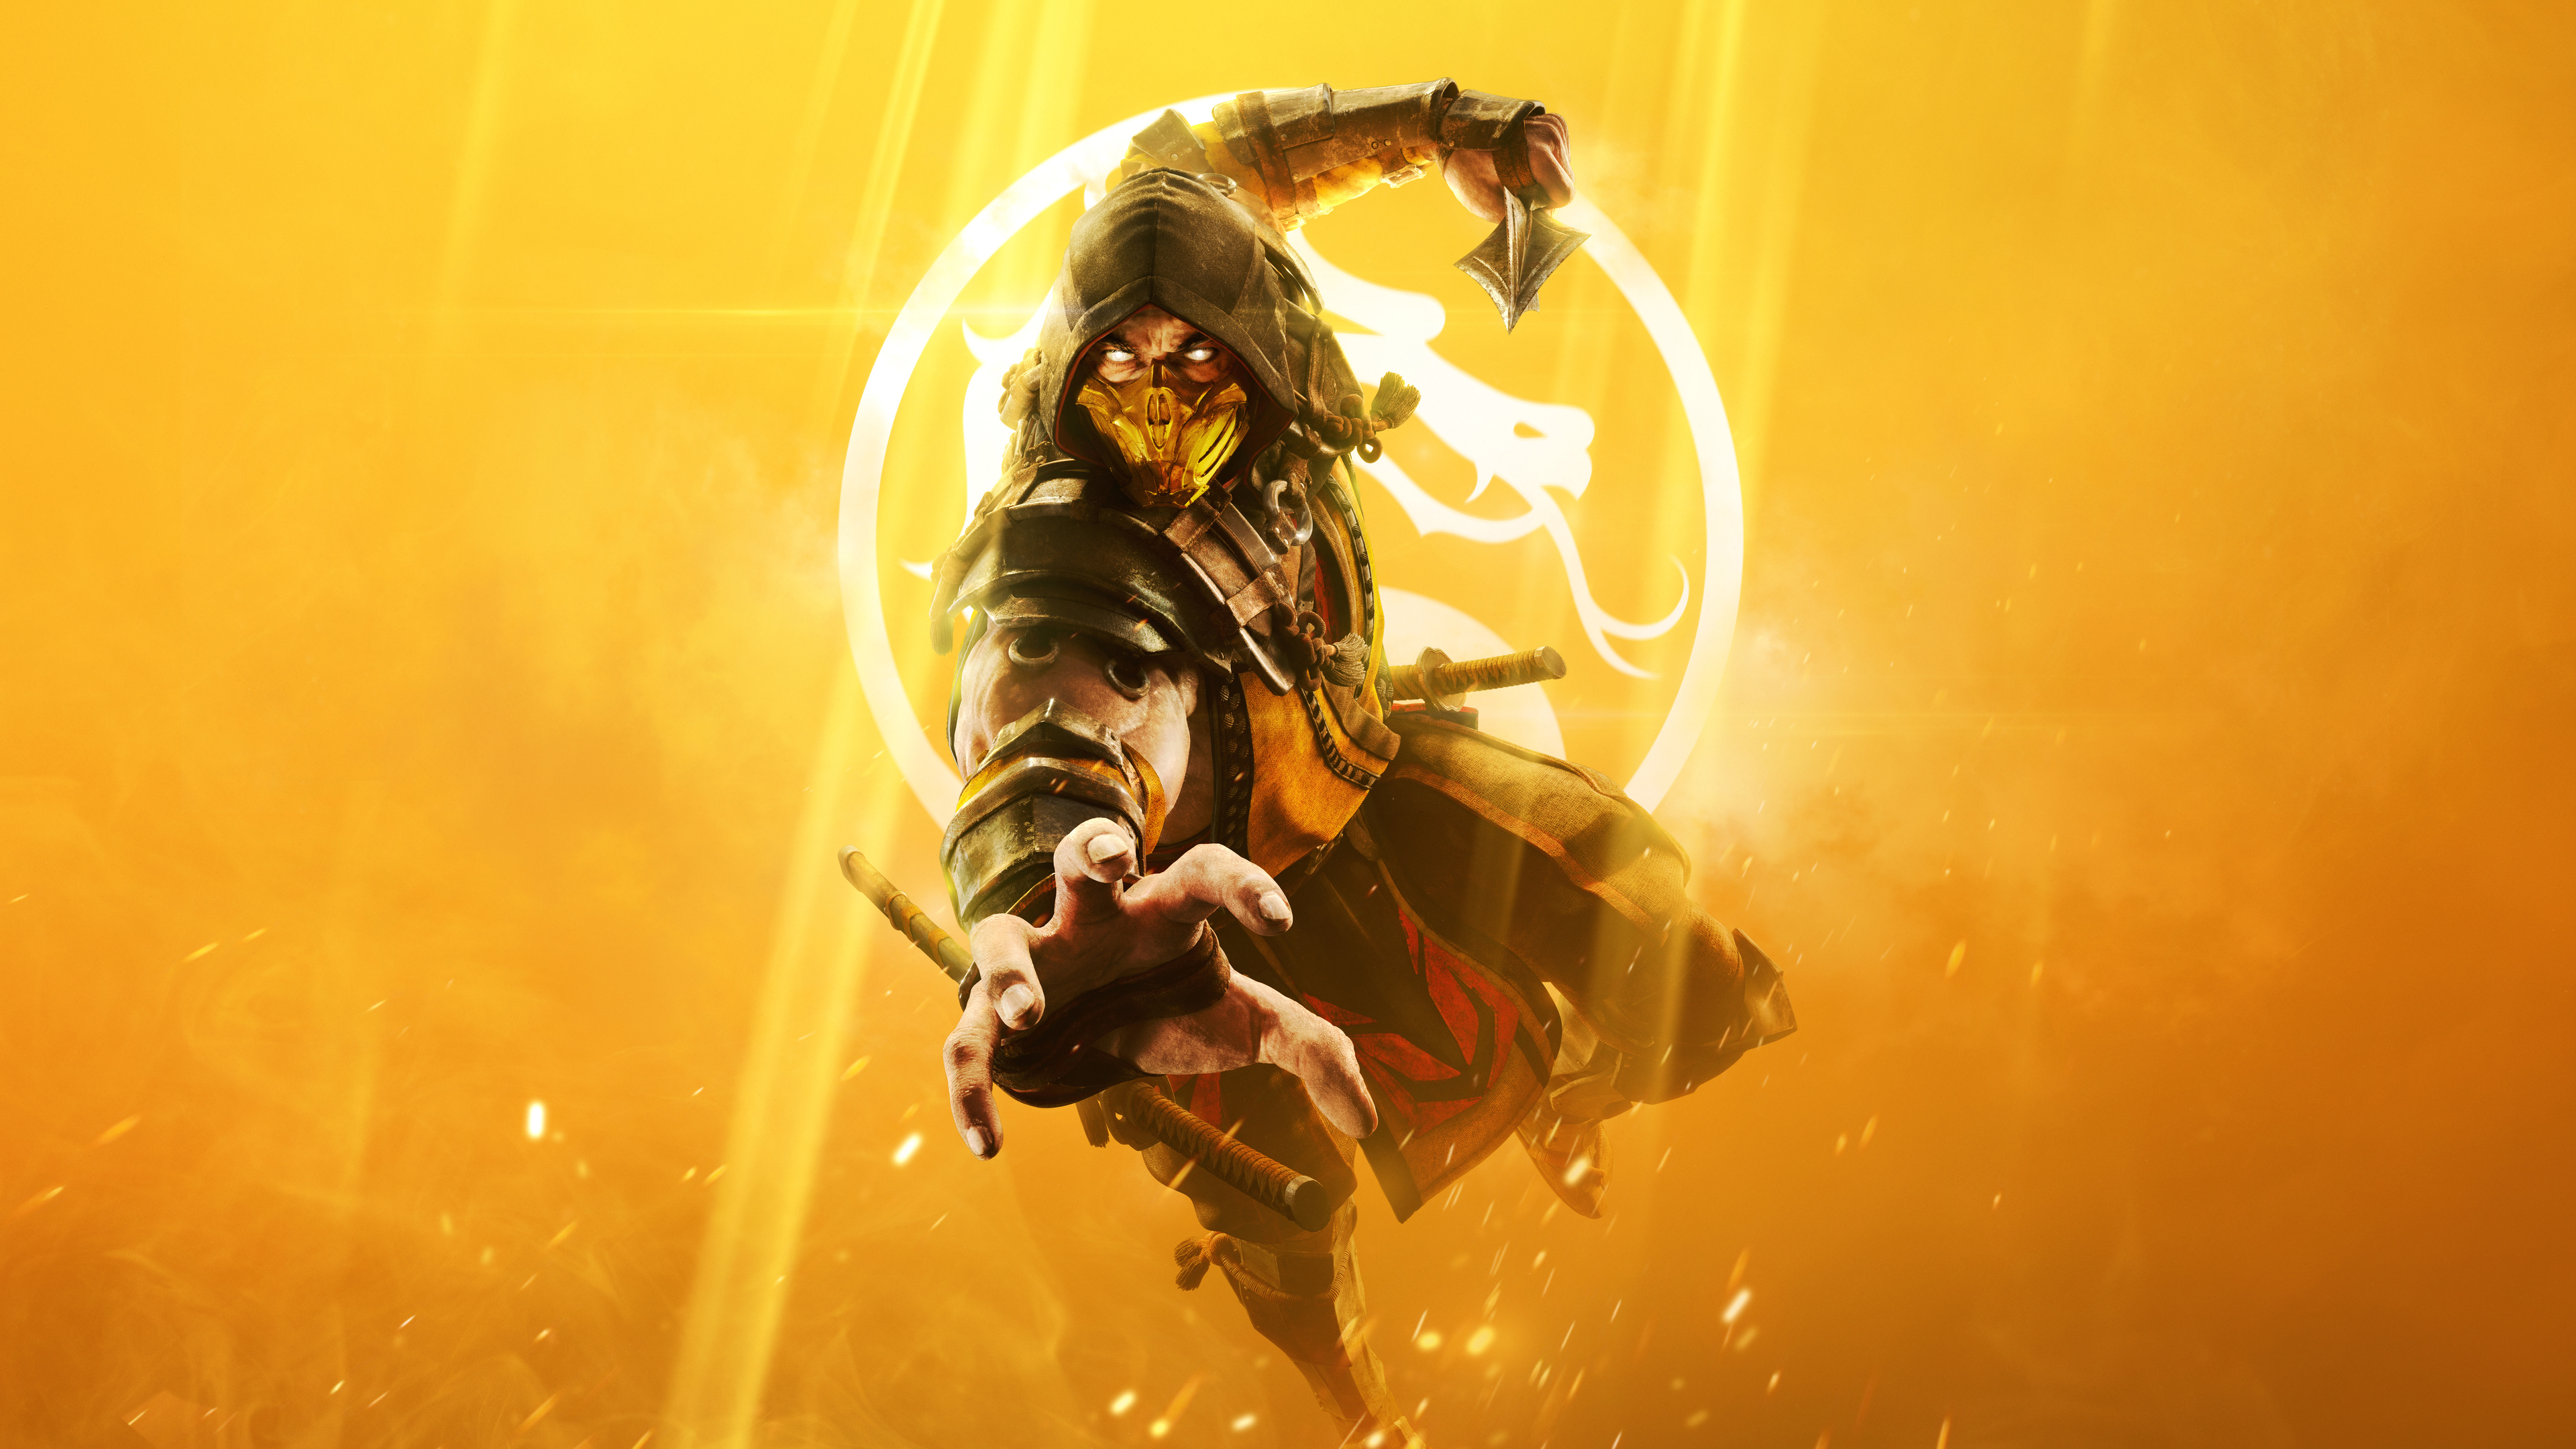 mortal kombat key art 4k 1558221901 - Mortal Kombat Key Art 4k - xbox games wallpapers, ps games wallpapers, pc games wallpapers, mortal kombat wallpapers, mortal kombat 11 wallpapers, hd-wallpapers, games wallpapers, 4k-wallpapers